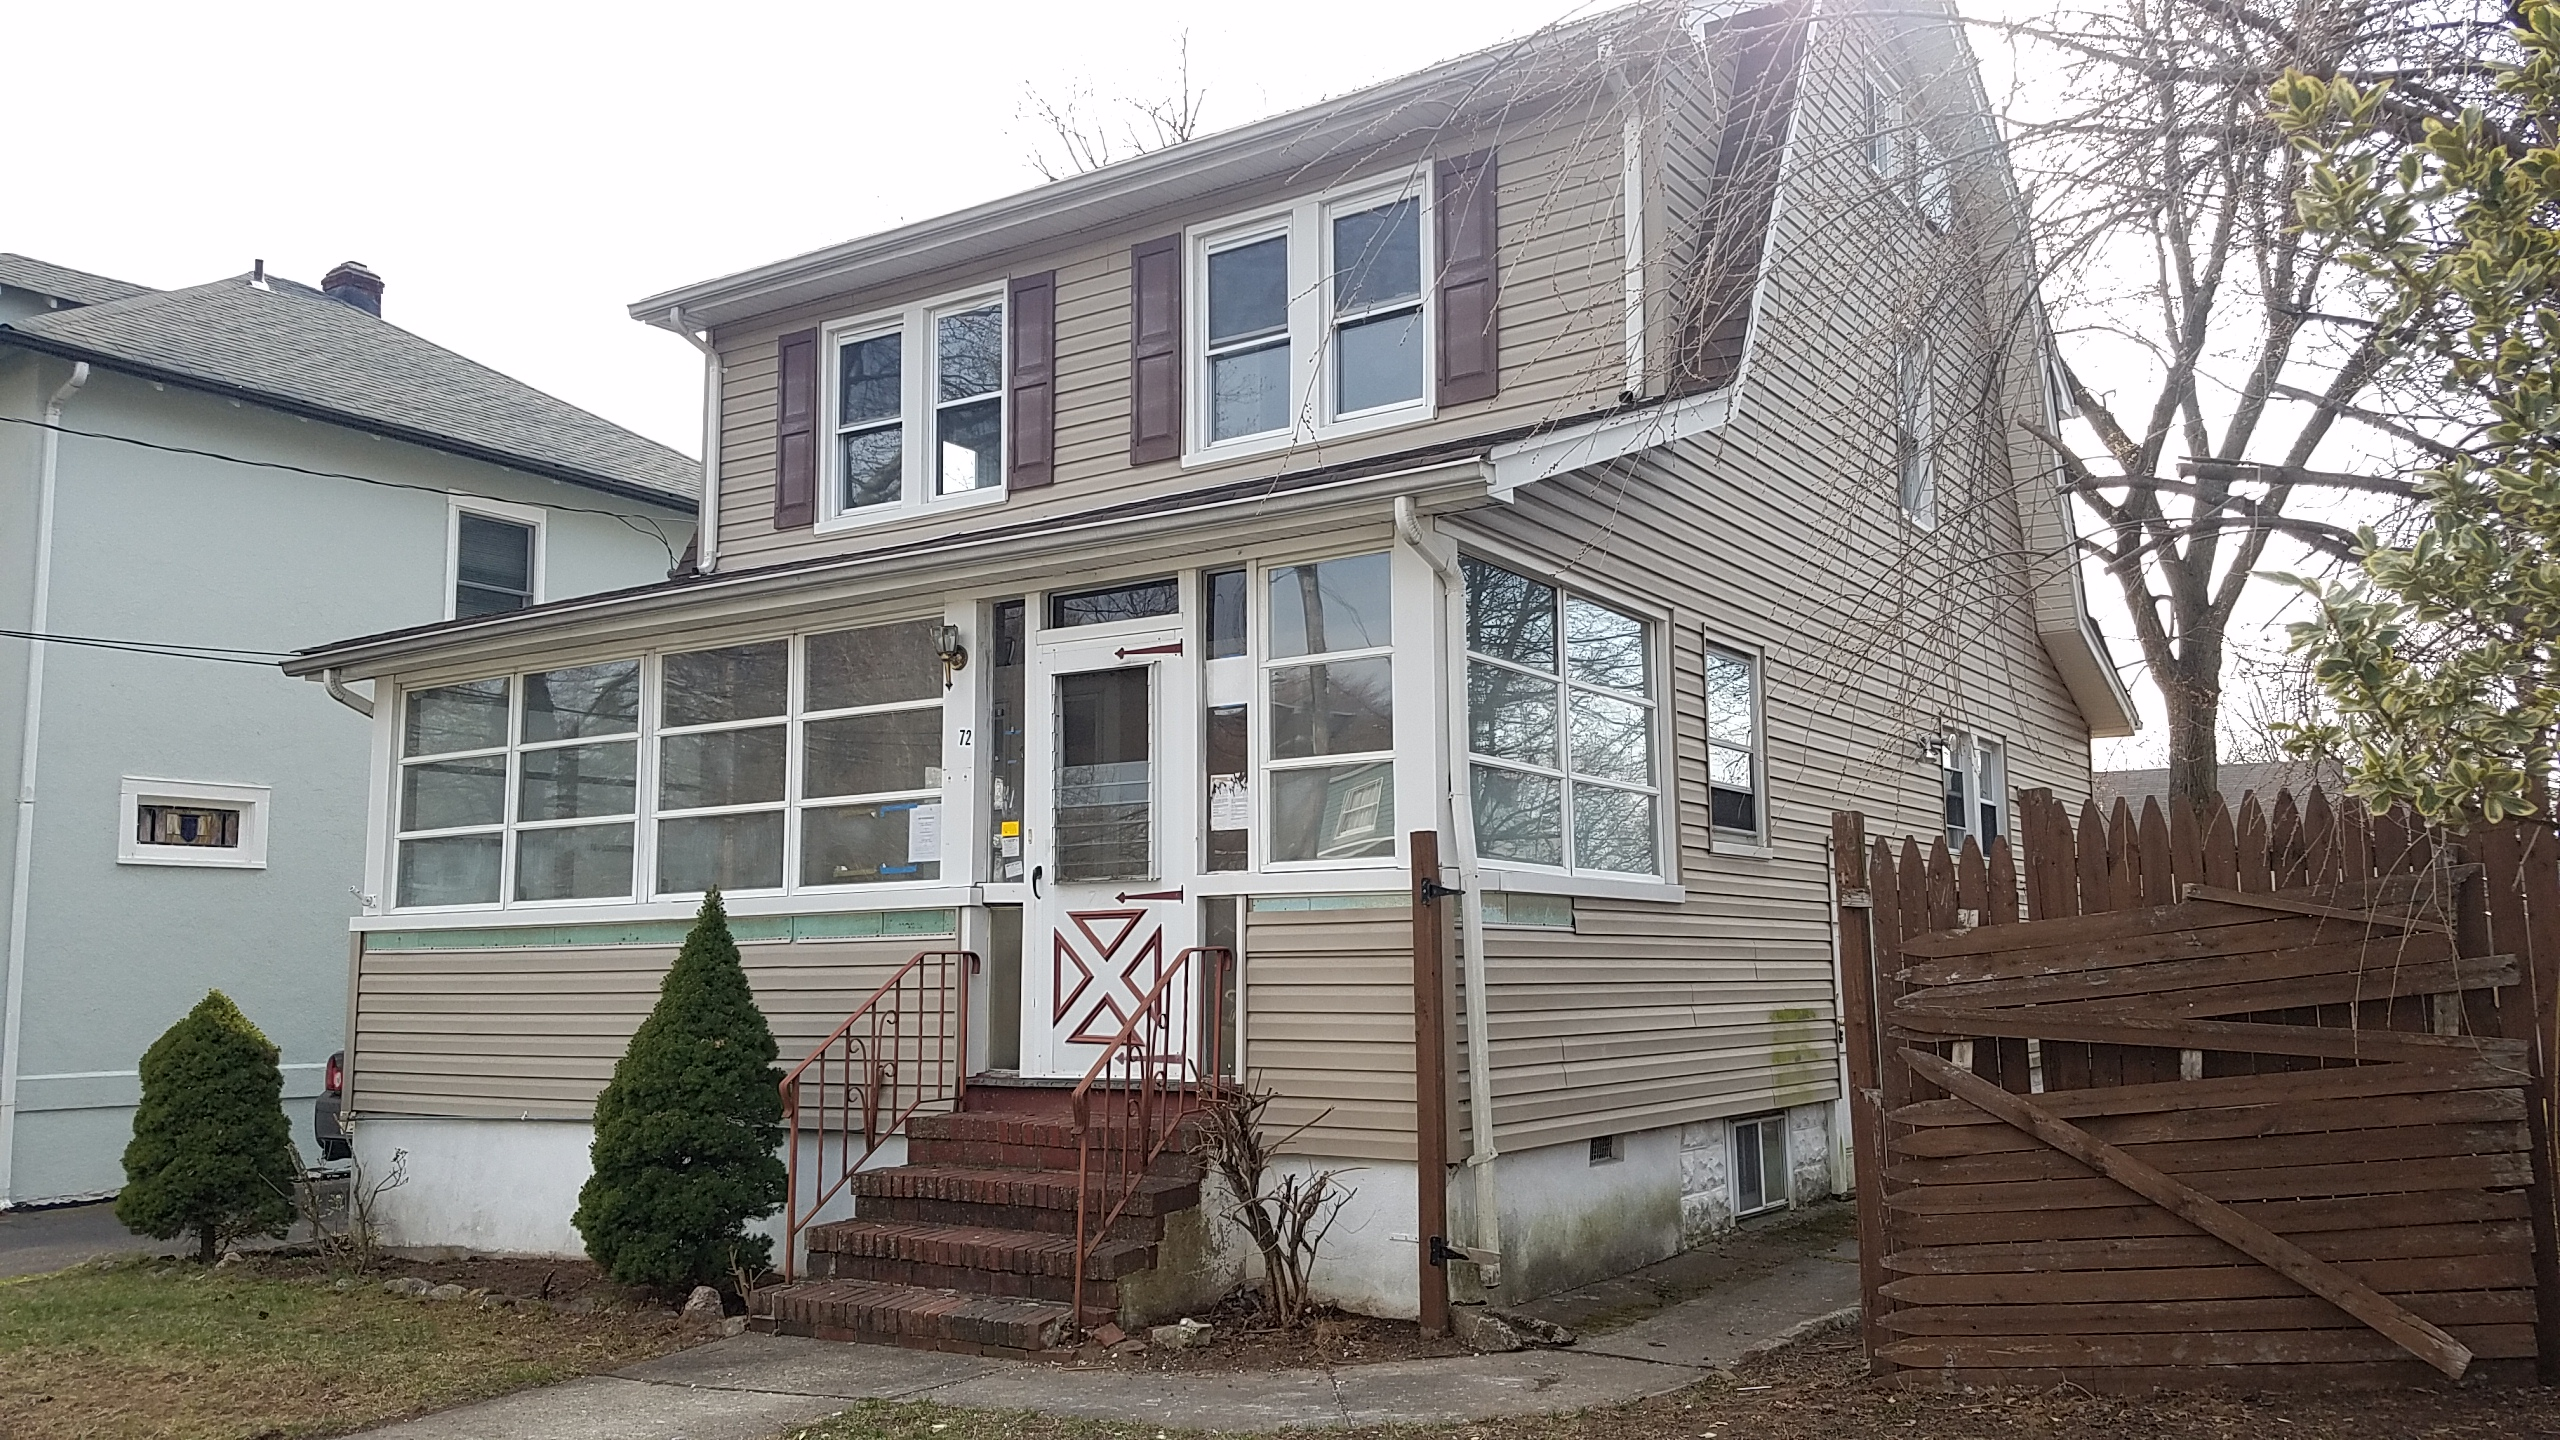 SOLD- 72 View St. Bergenfield, NJ 07621 $300,000